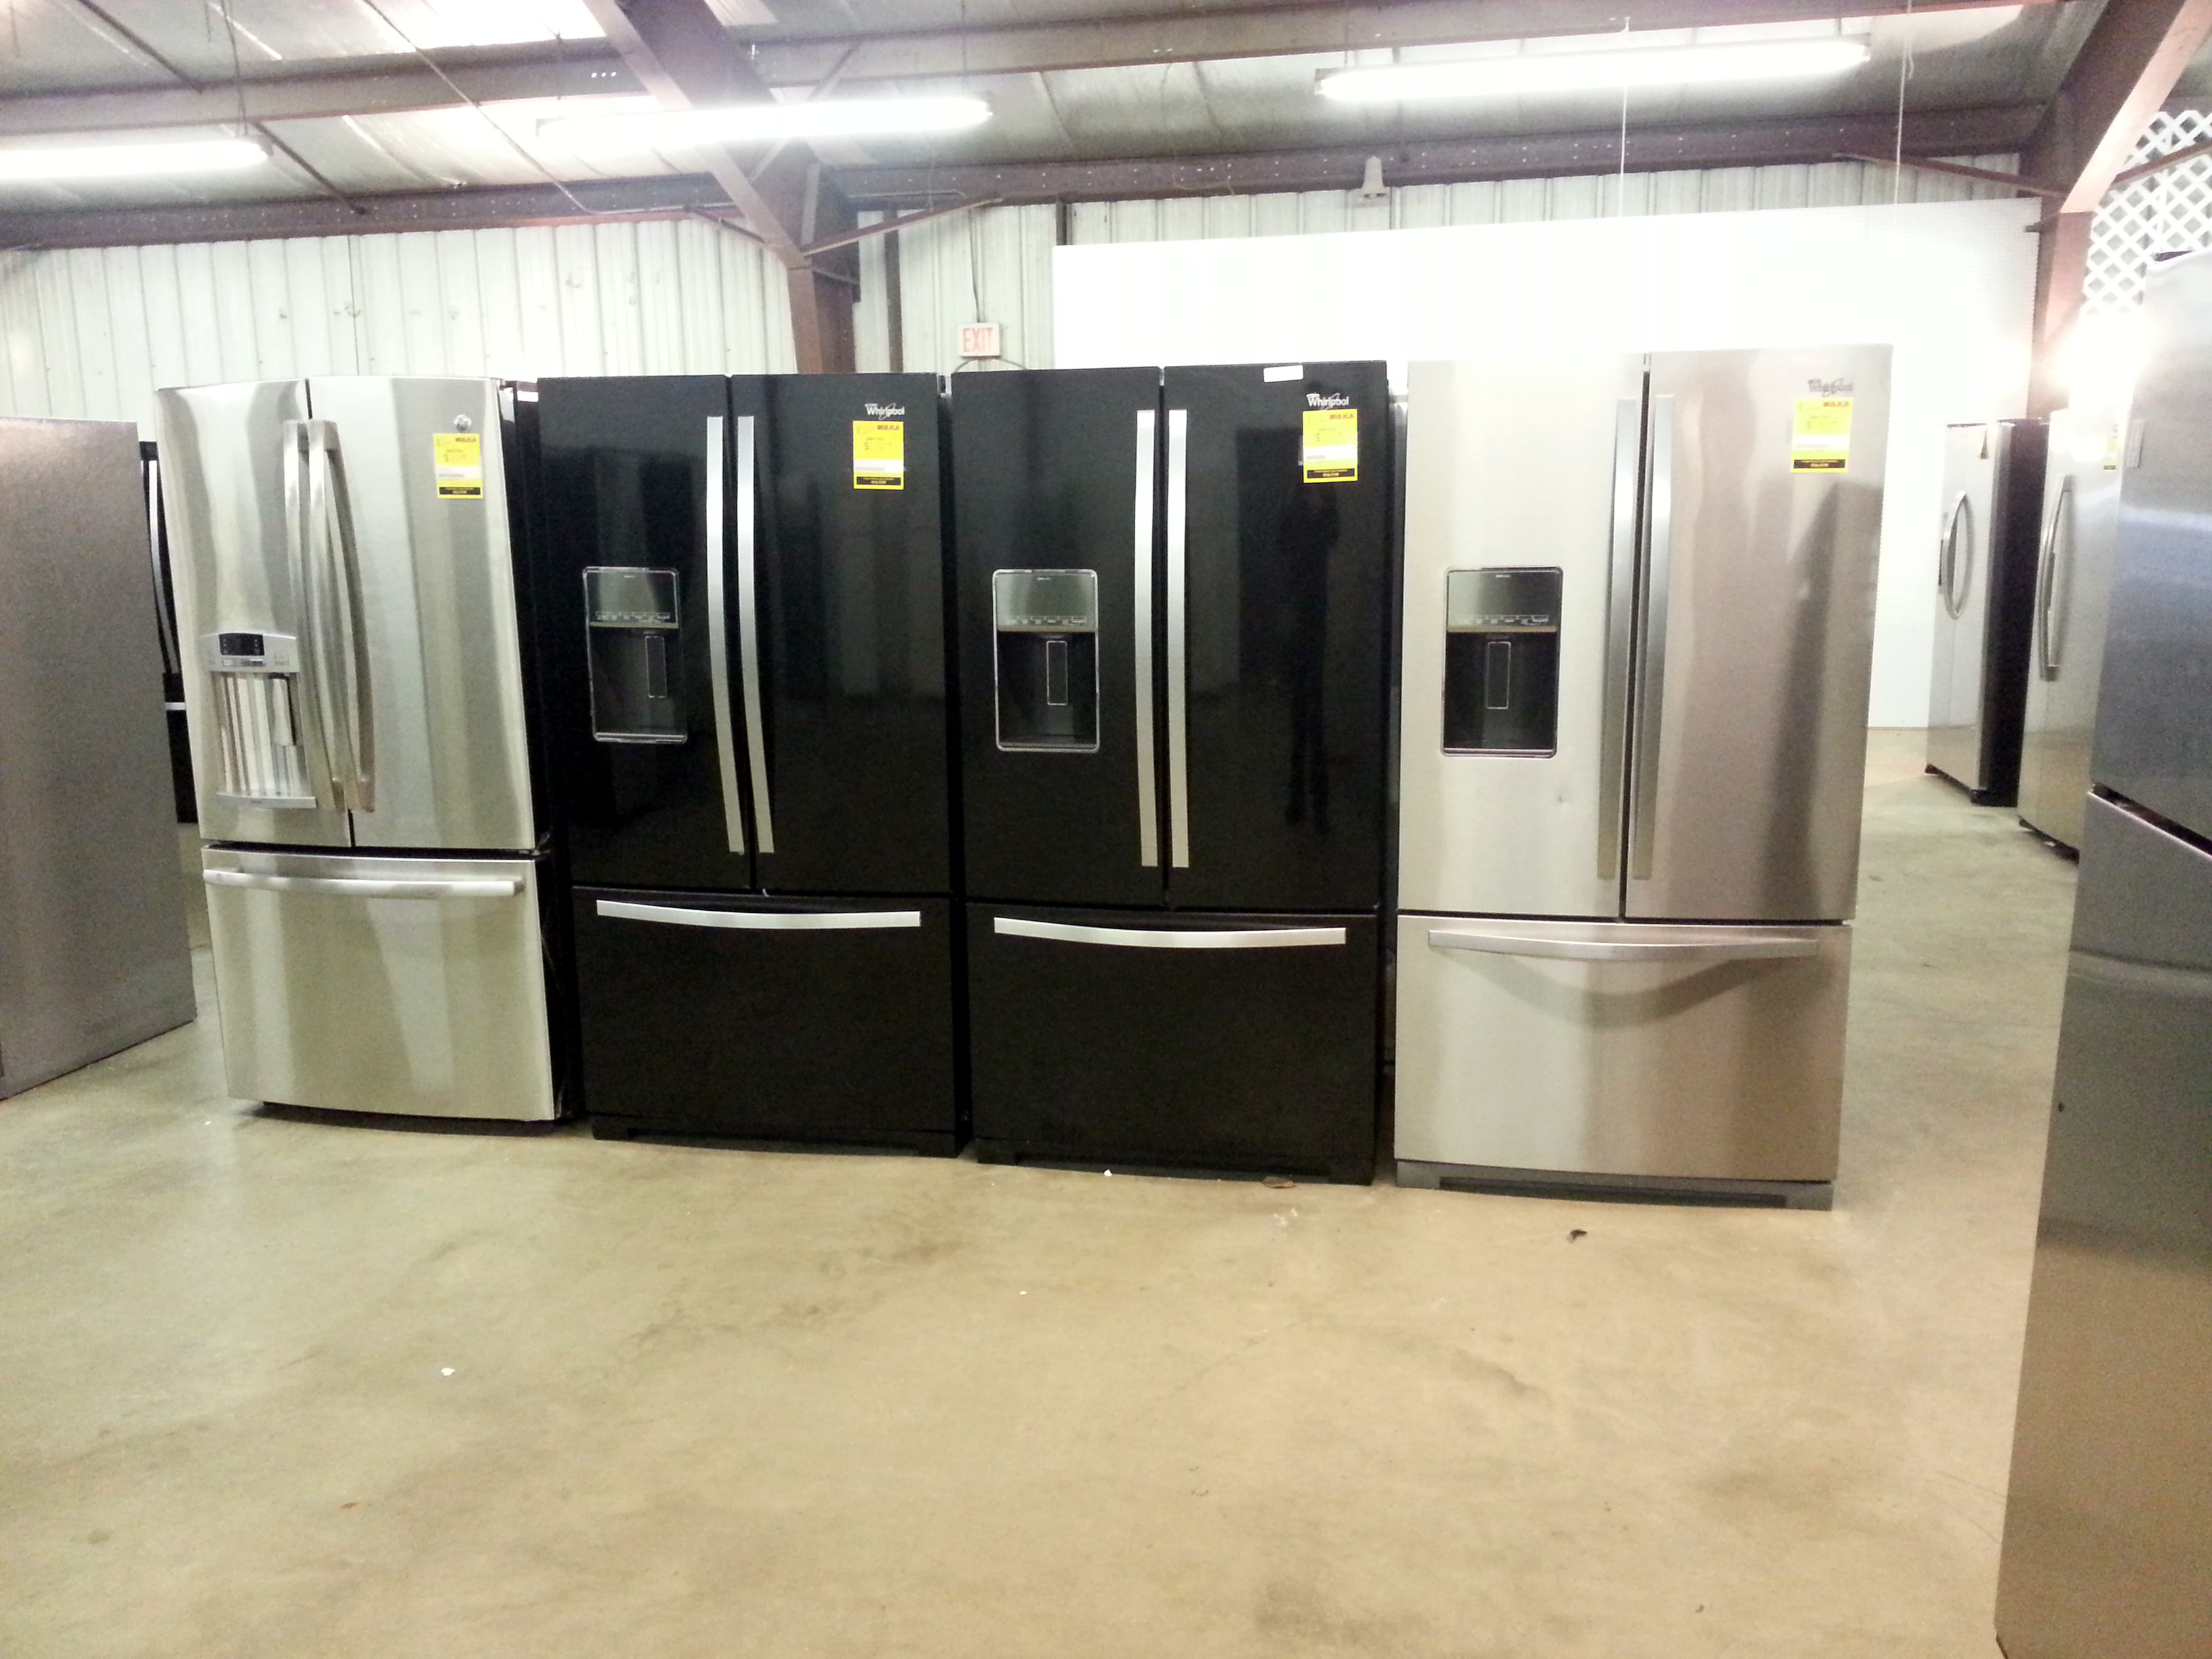 French Door Refrigerators at Silica Liquidation Sale